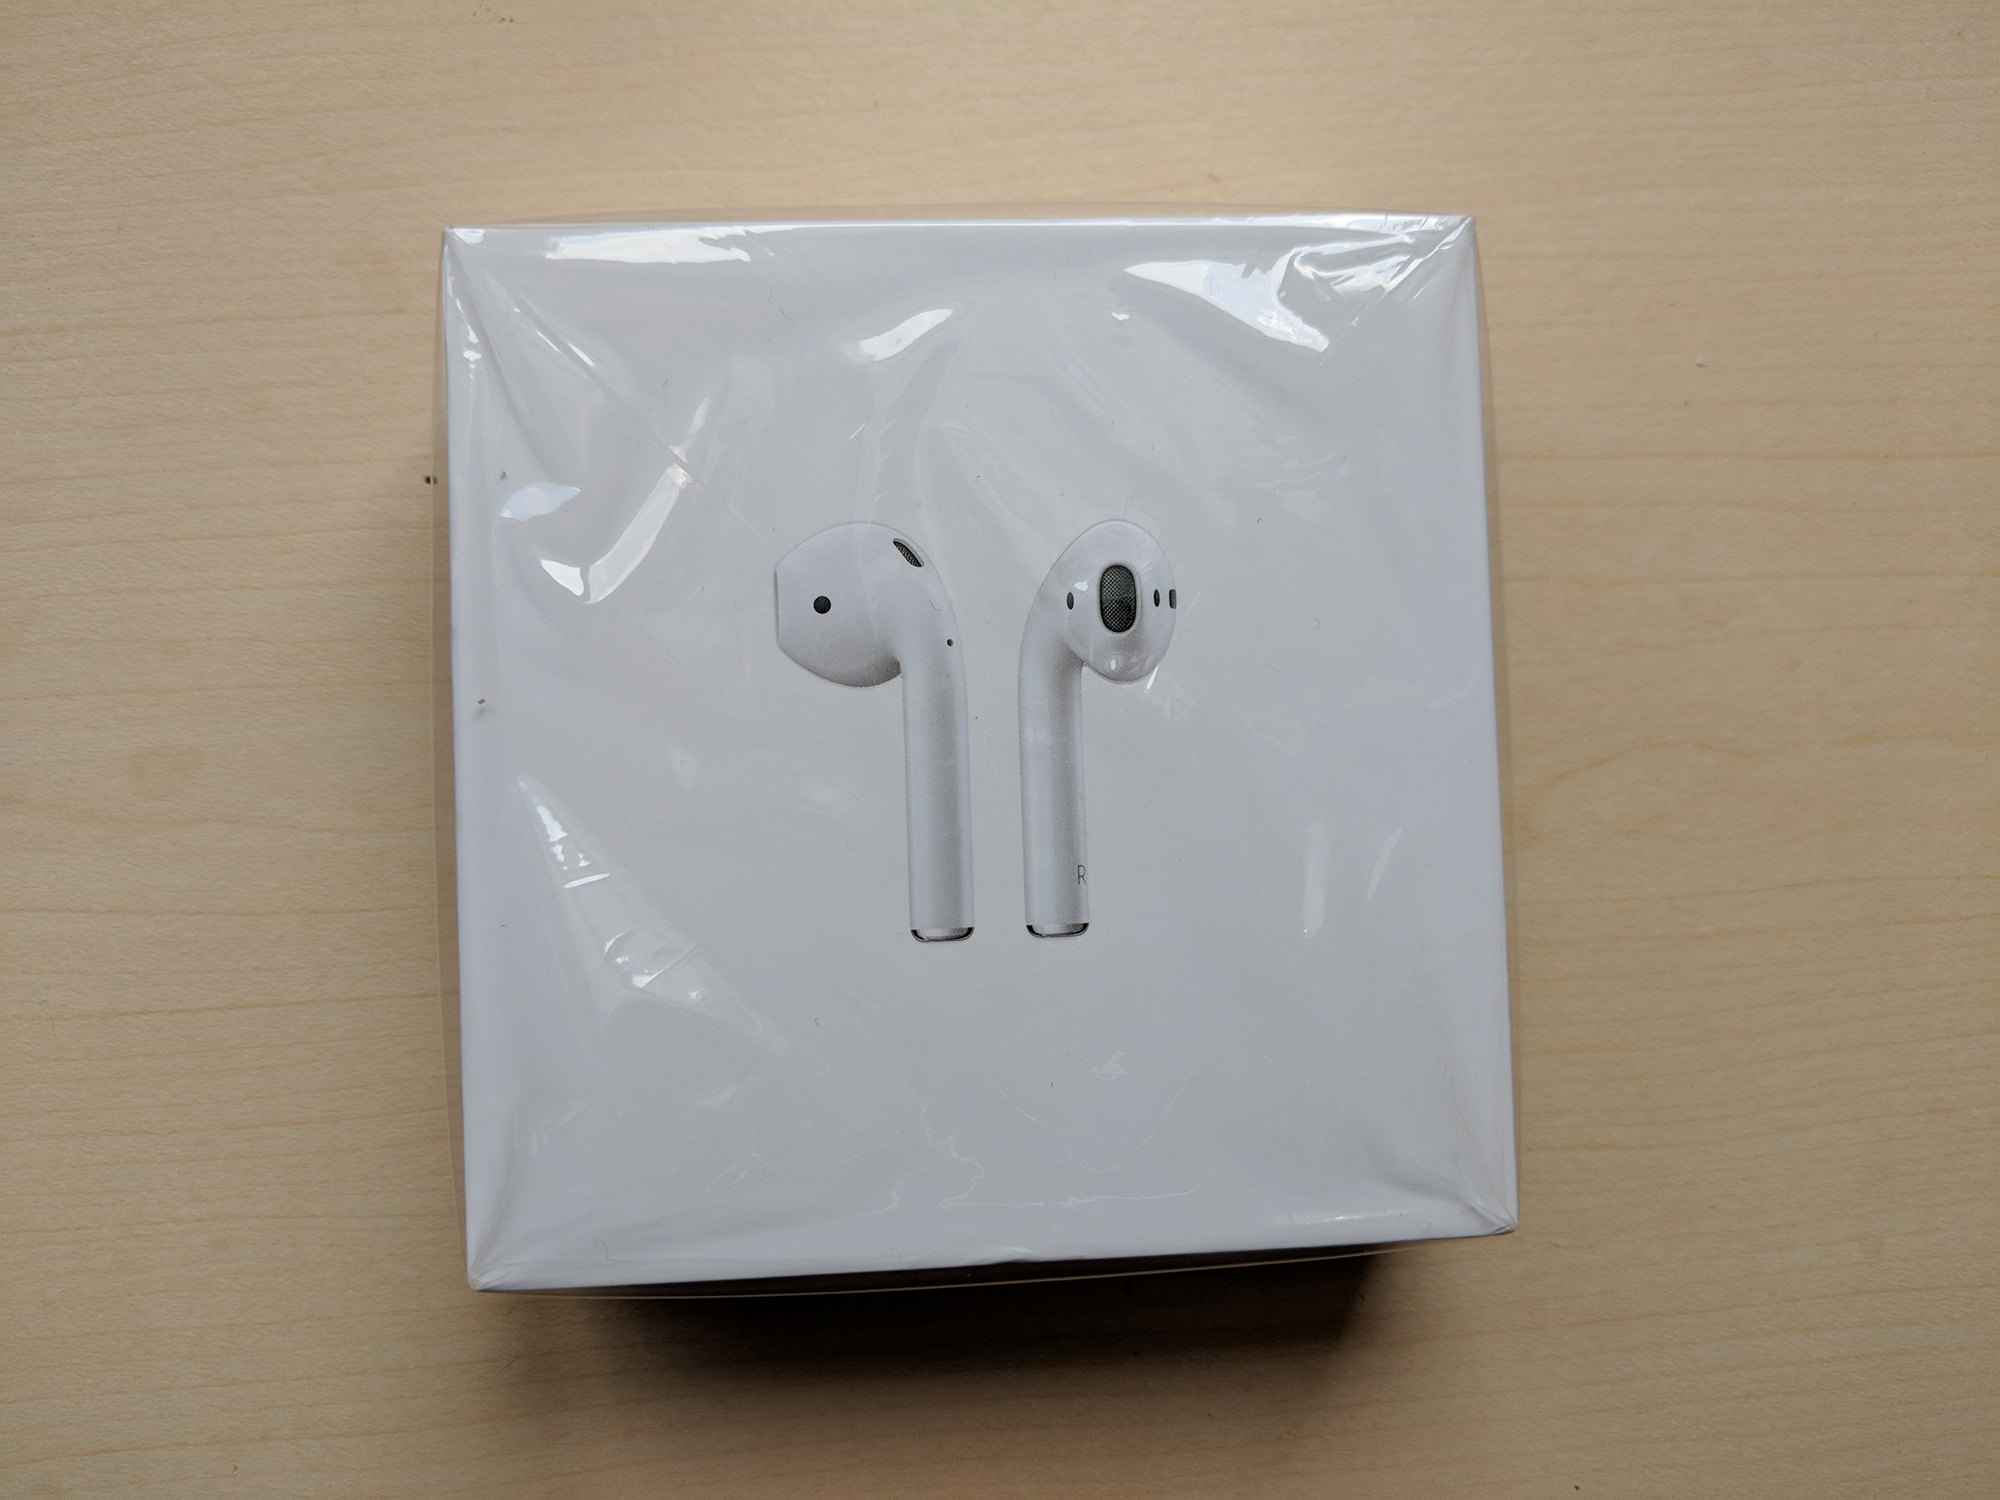 Apple Airpods Box